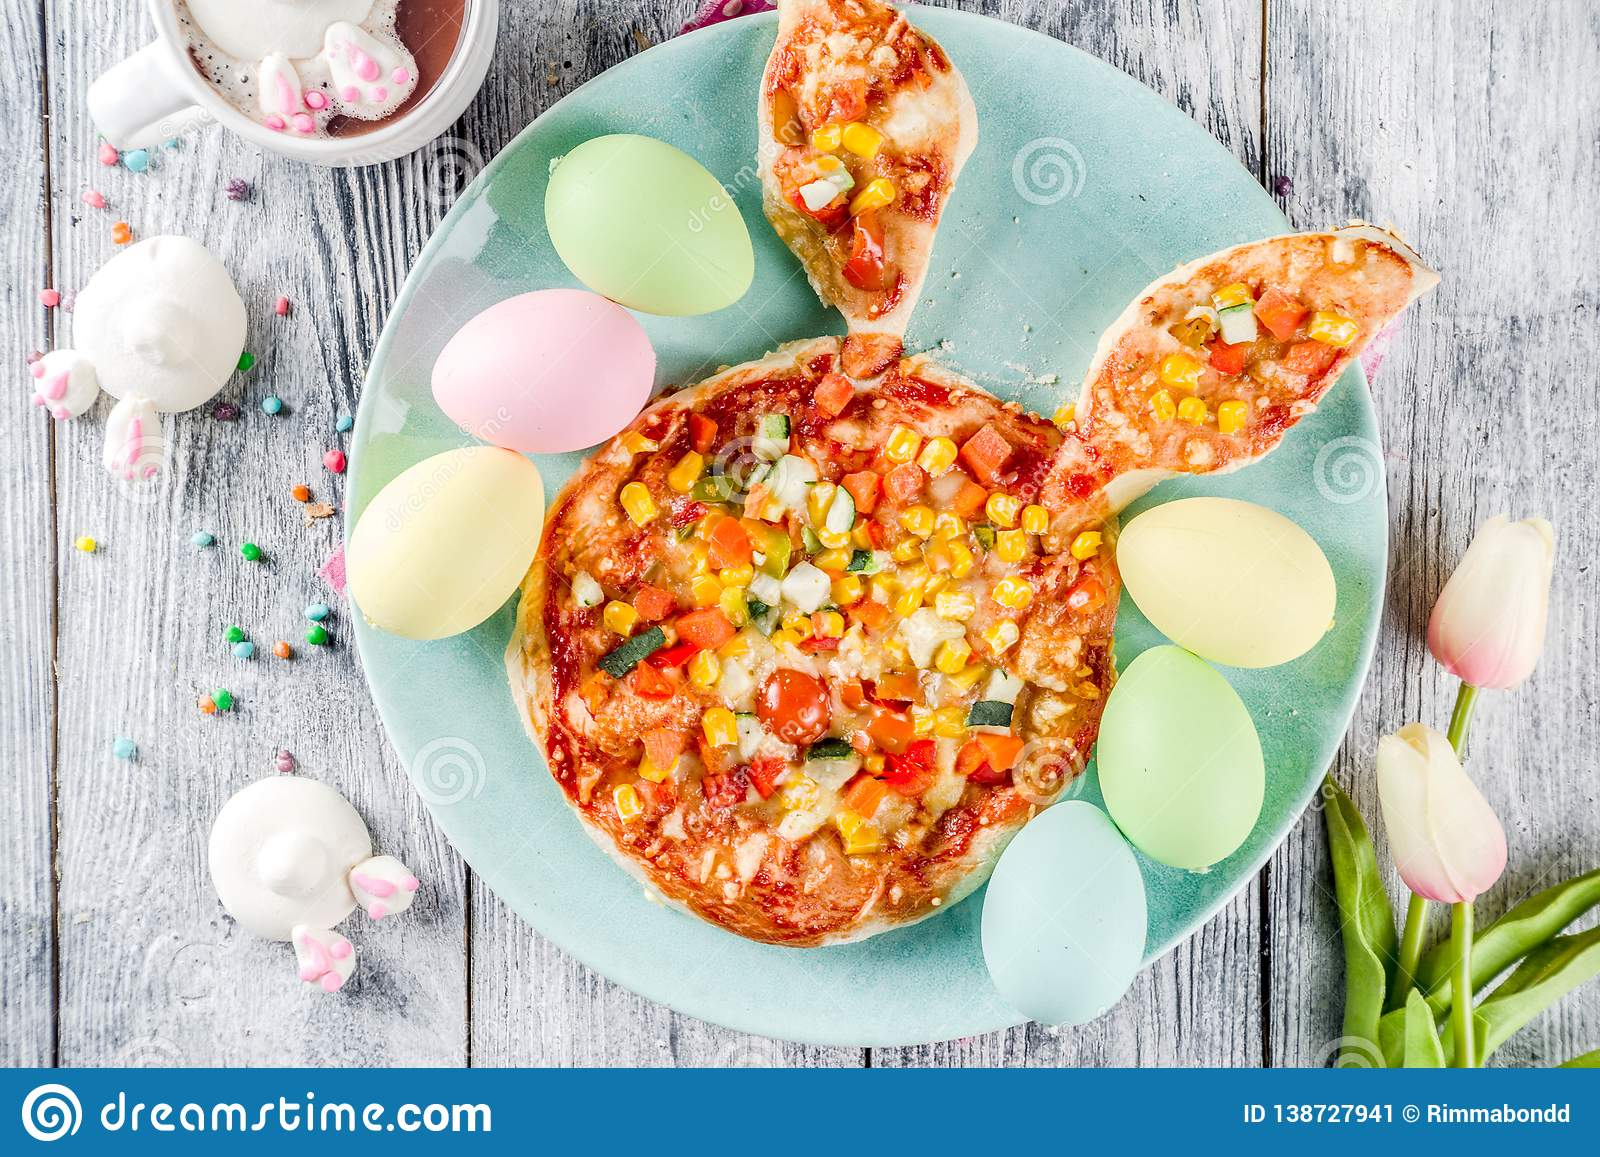 Funny easter kids pizza stock image  Image of baked - 138727941